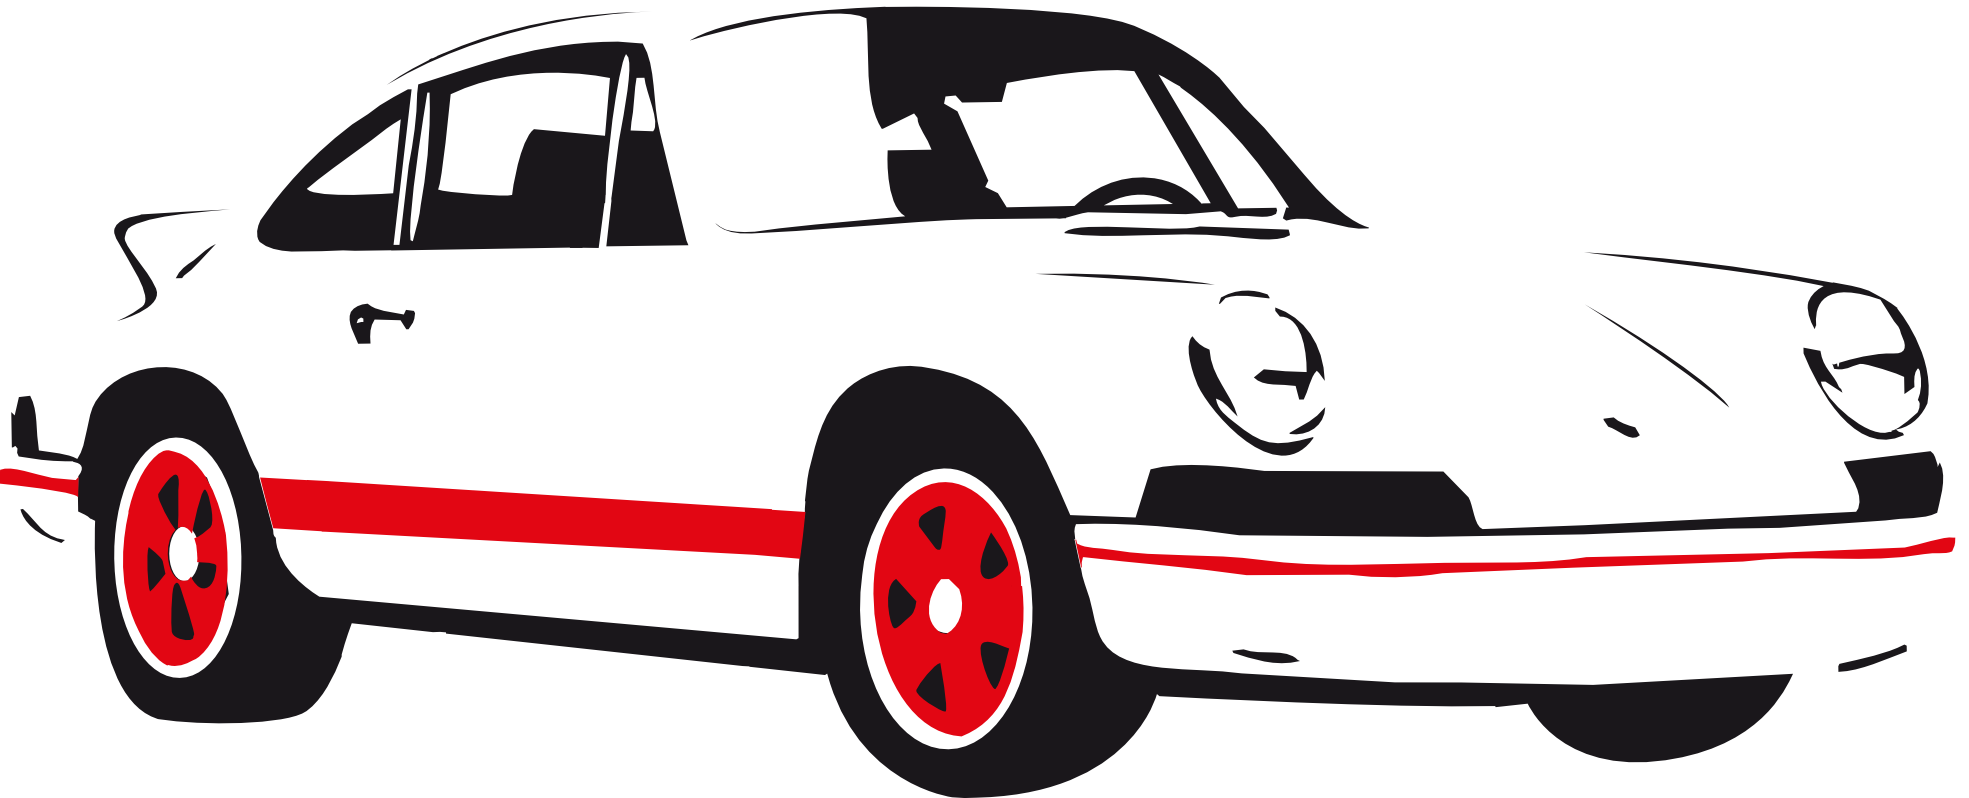 black sports car clipart - photo #12